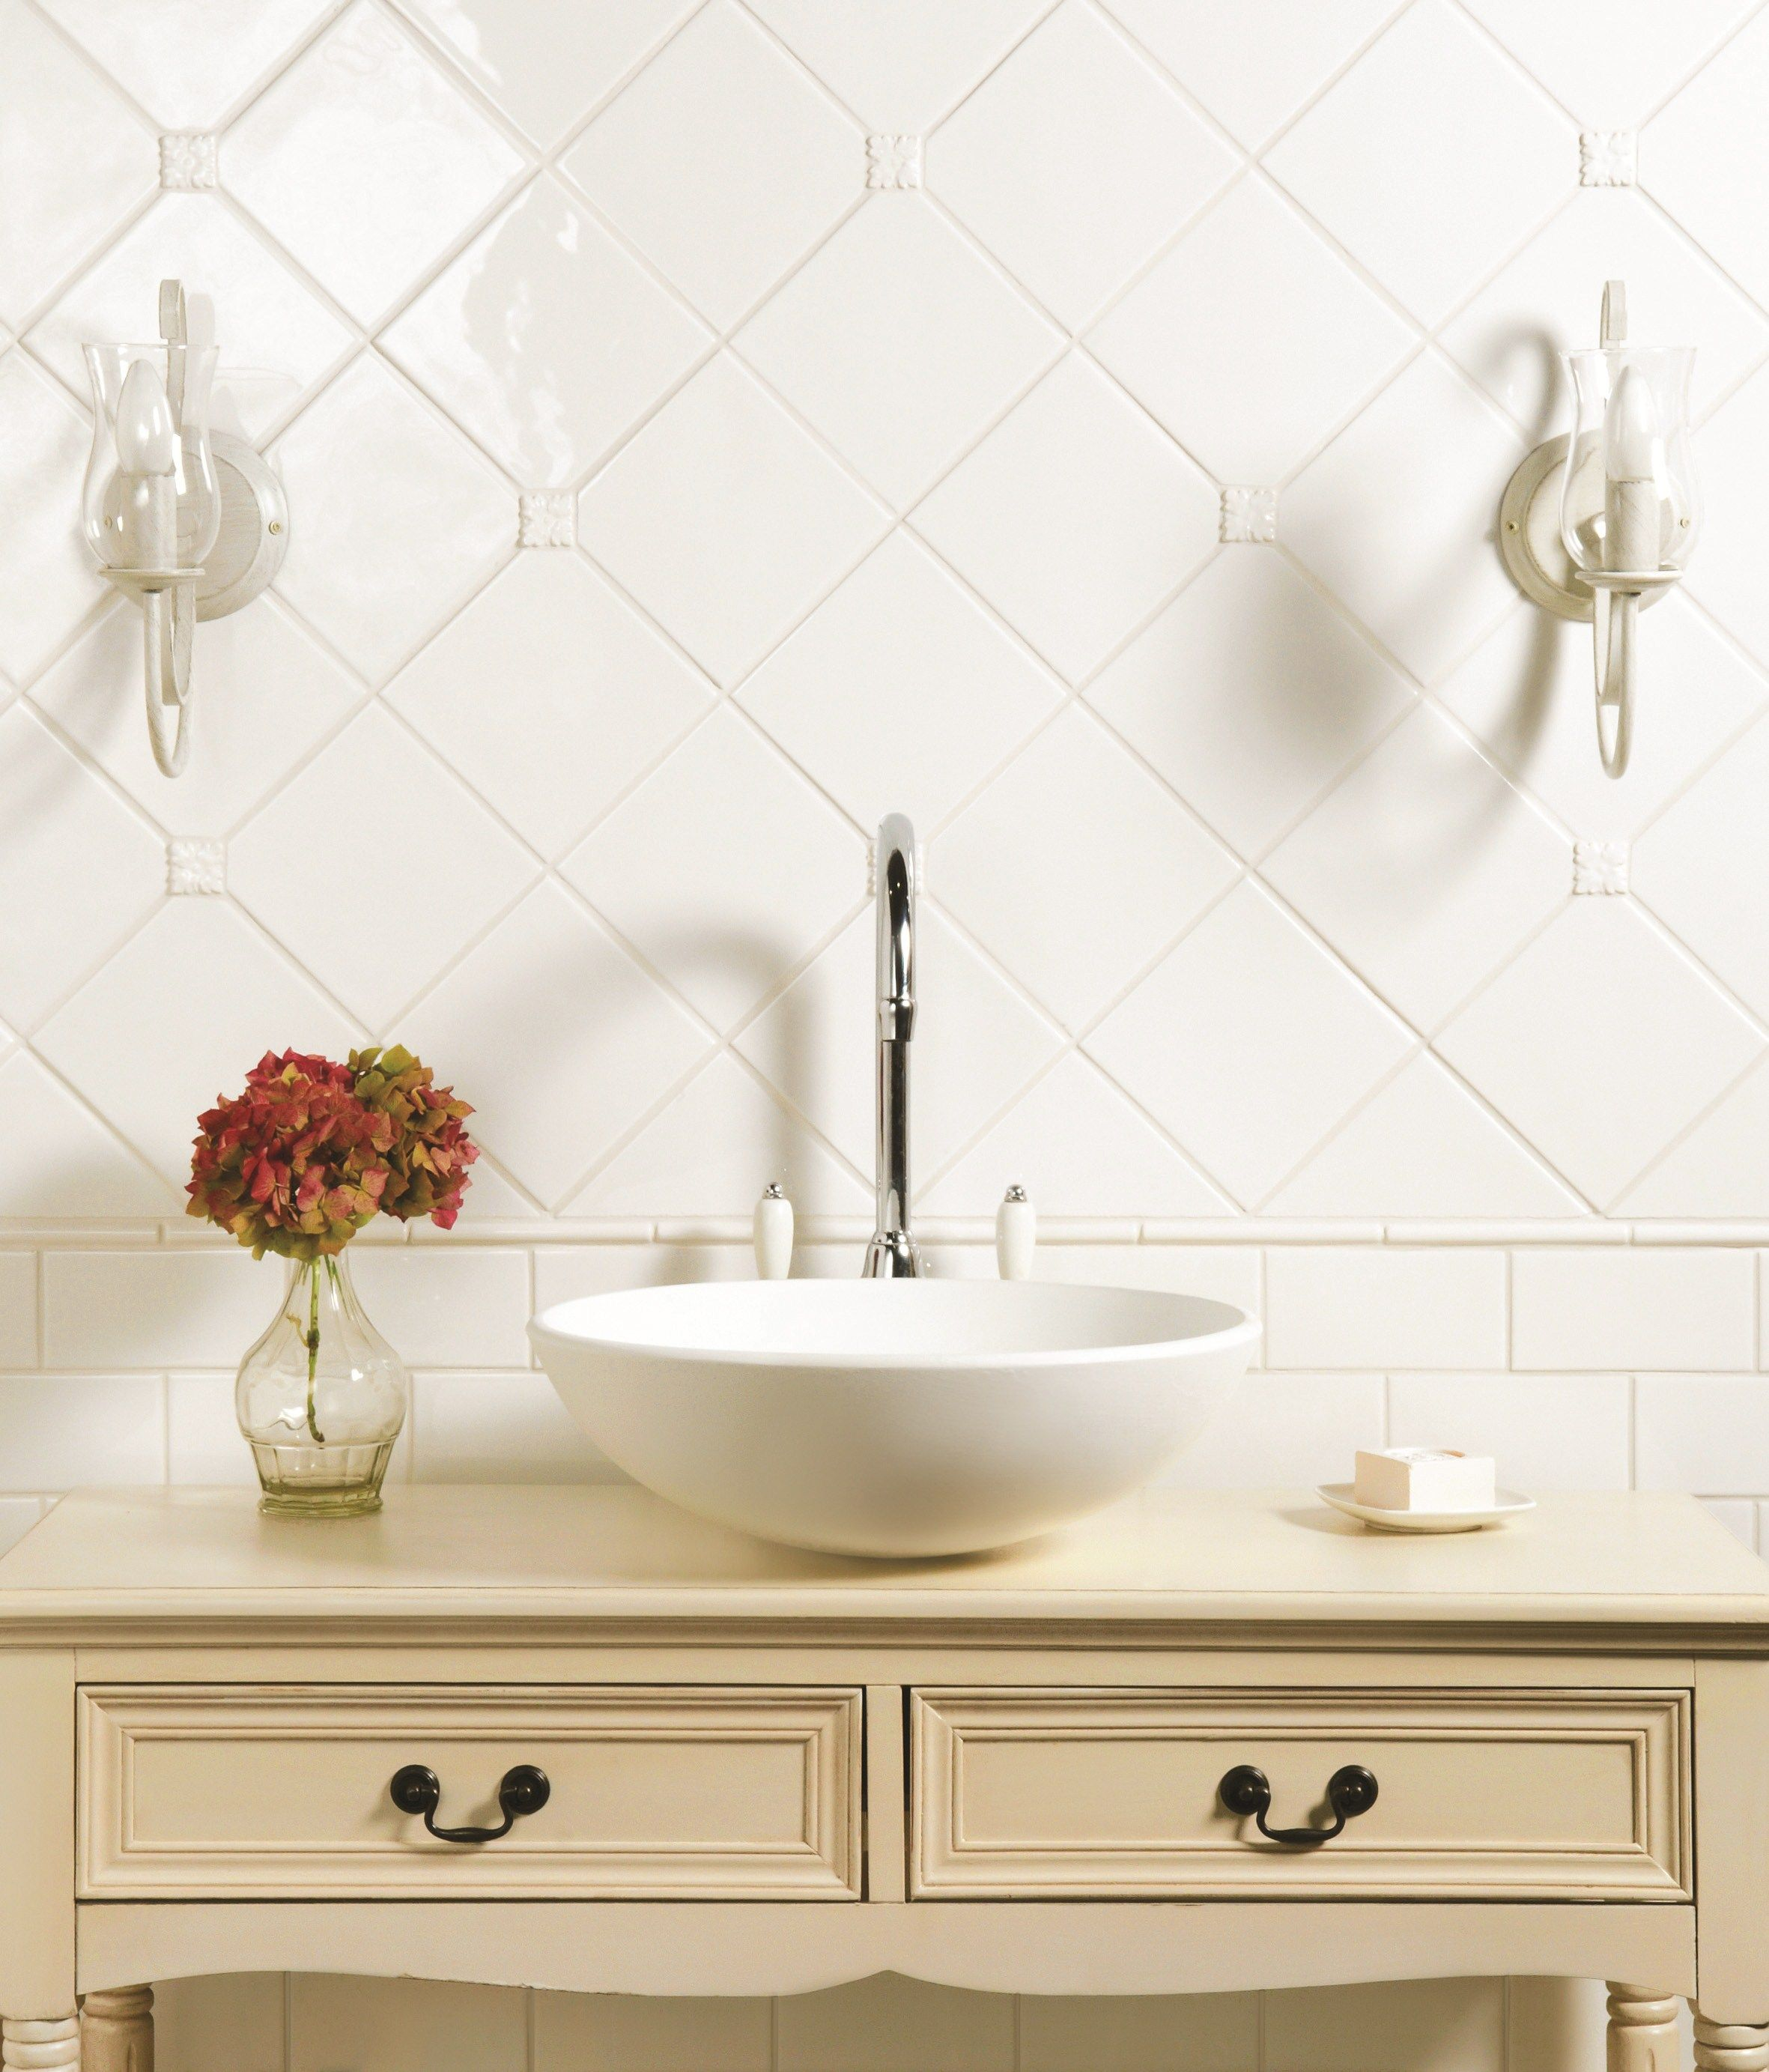 Classic white helmingham tiles are timeless whilst knightsbridge classic white helmingham tiles are timeless whilst knightsbridge drop in tiles add a charming decorative dailygadgetfo Choice Image